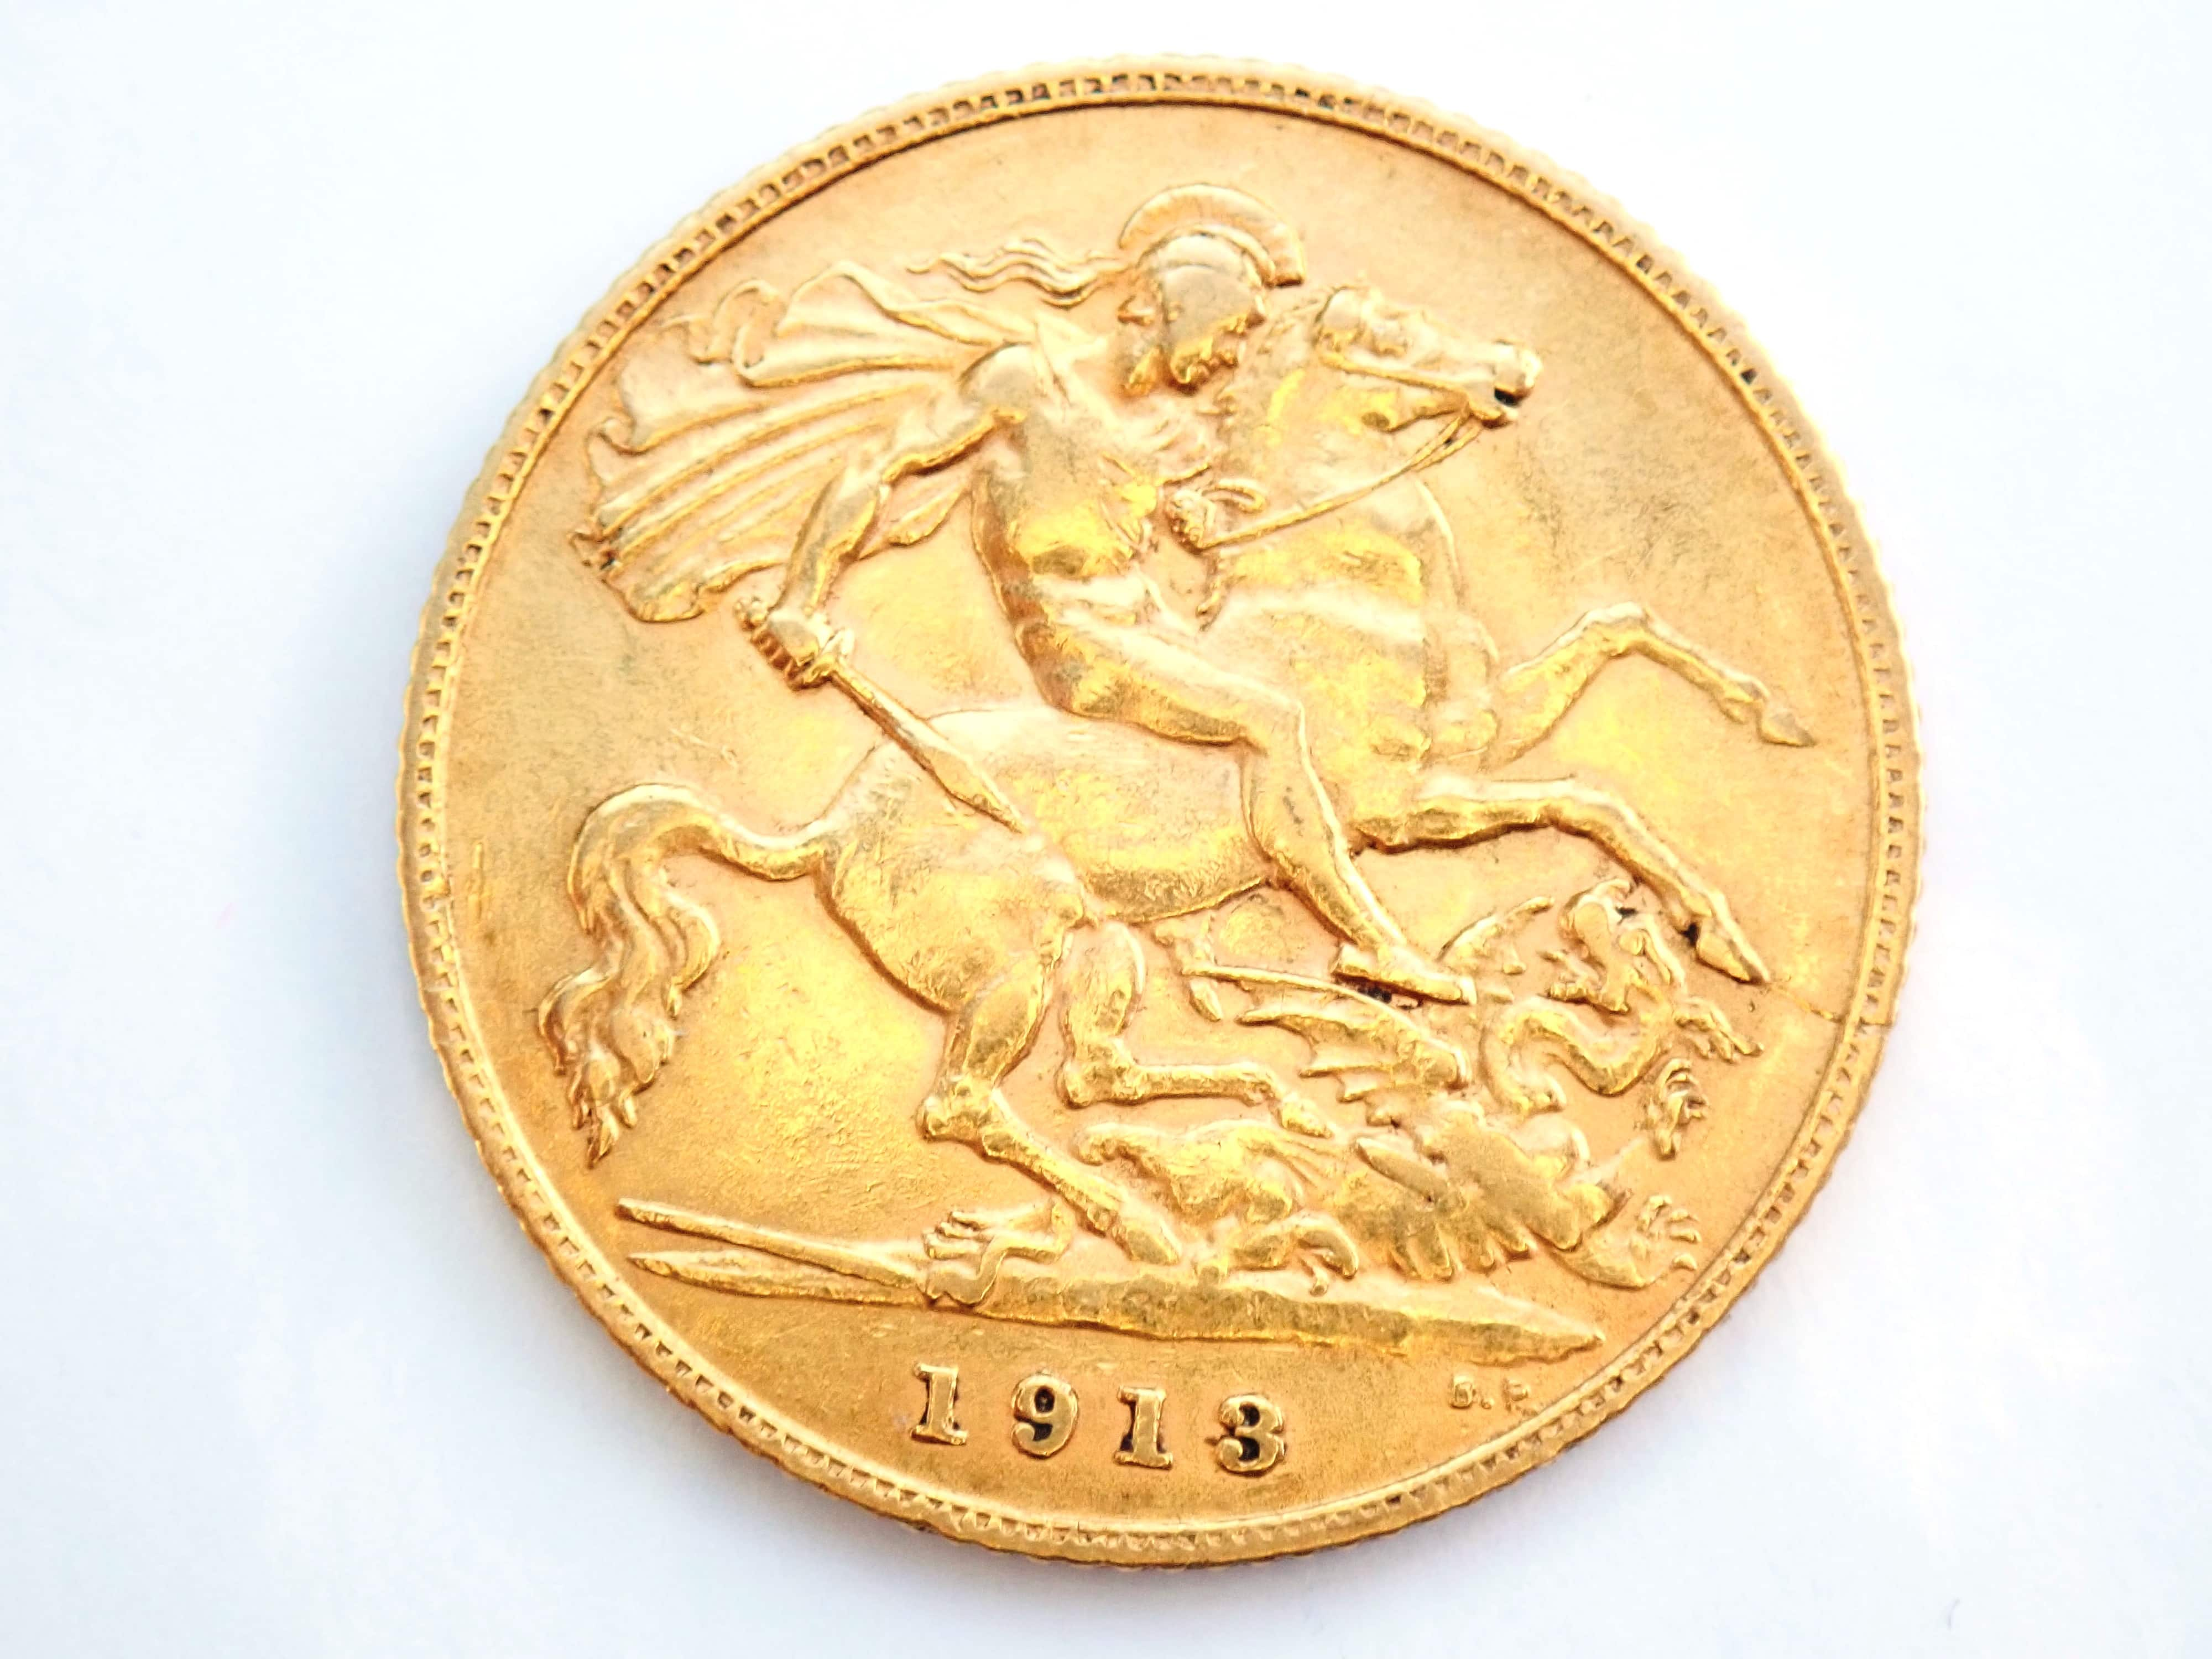 AA000824 - 1913 Gold Half Sovereign Coin - King George V- London Mint #b193